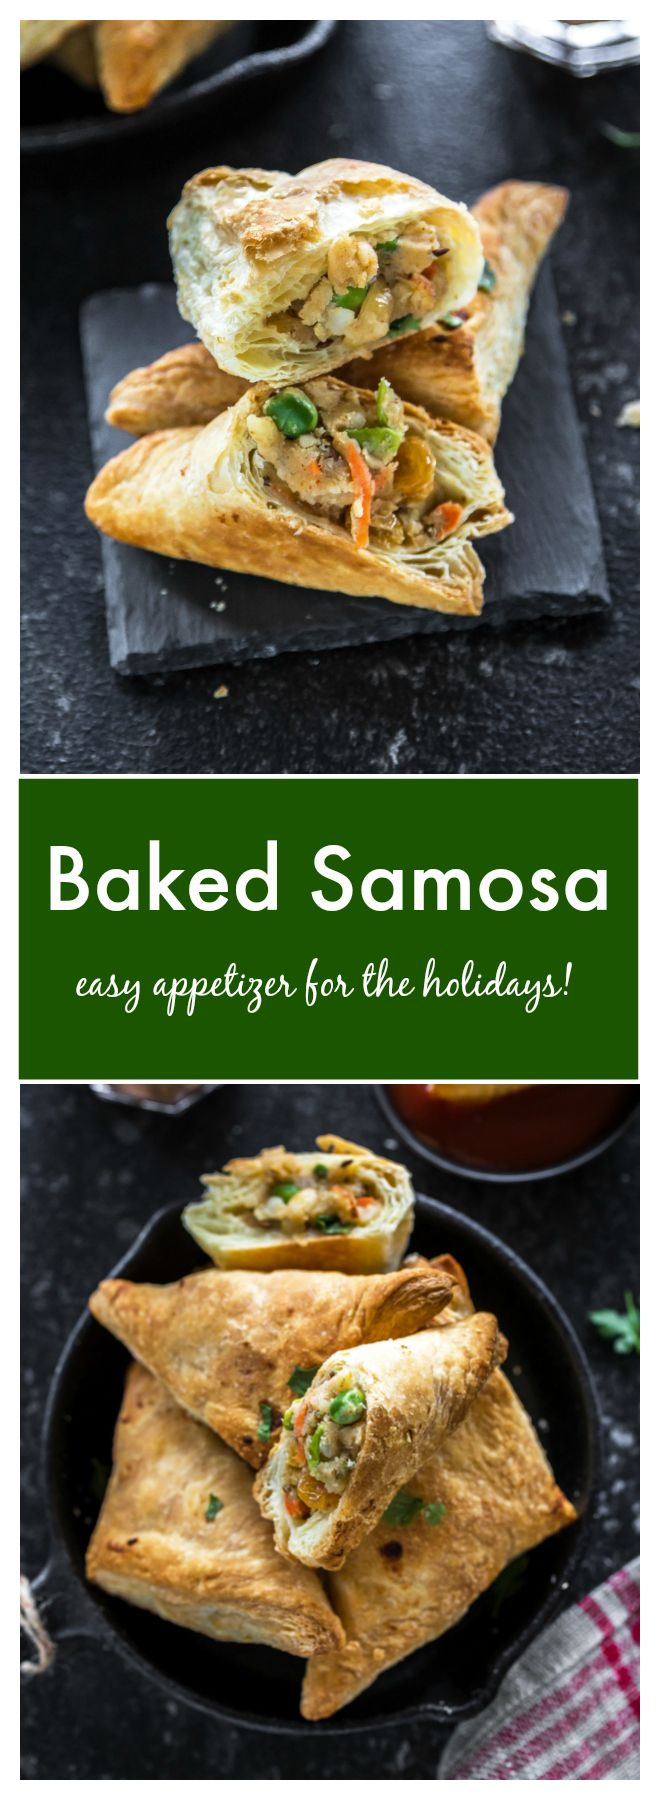 Vegan-friendly samosas filled with peas, carrots, raisins and potatoes. These crisp, golden-brown samosas make a great appetizer, side dish or snack!